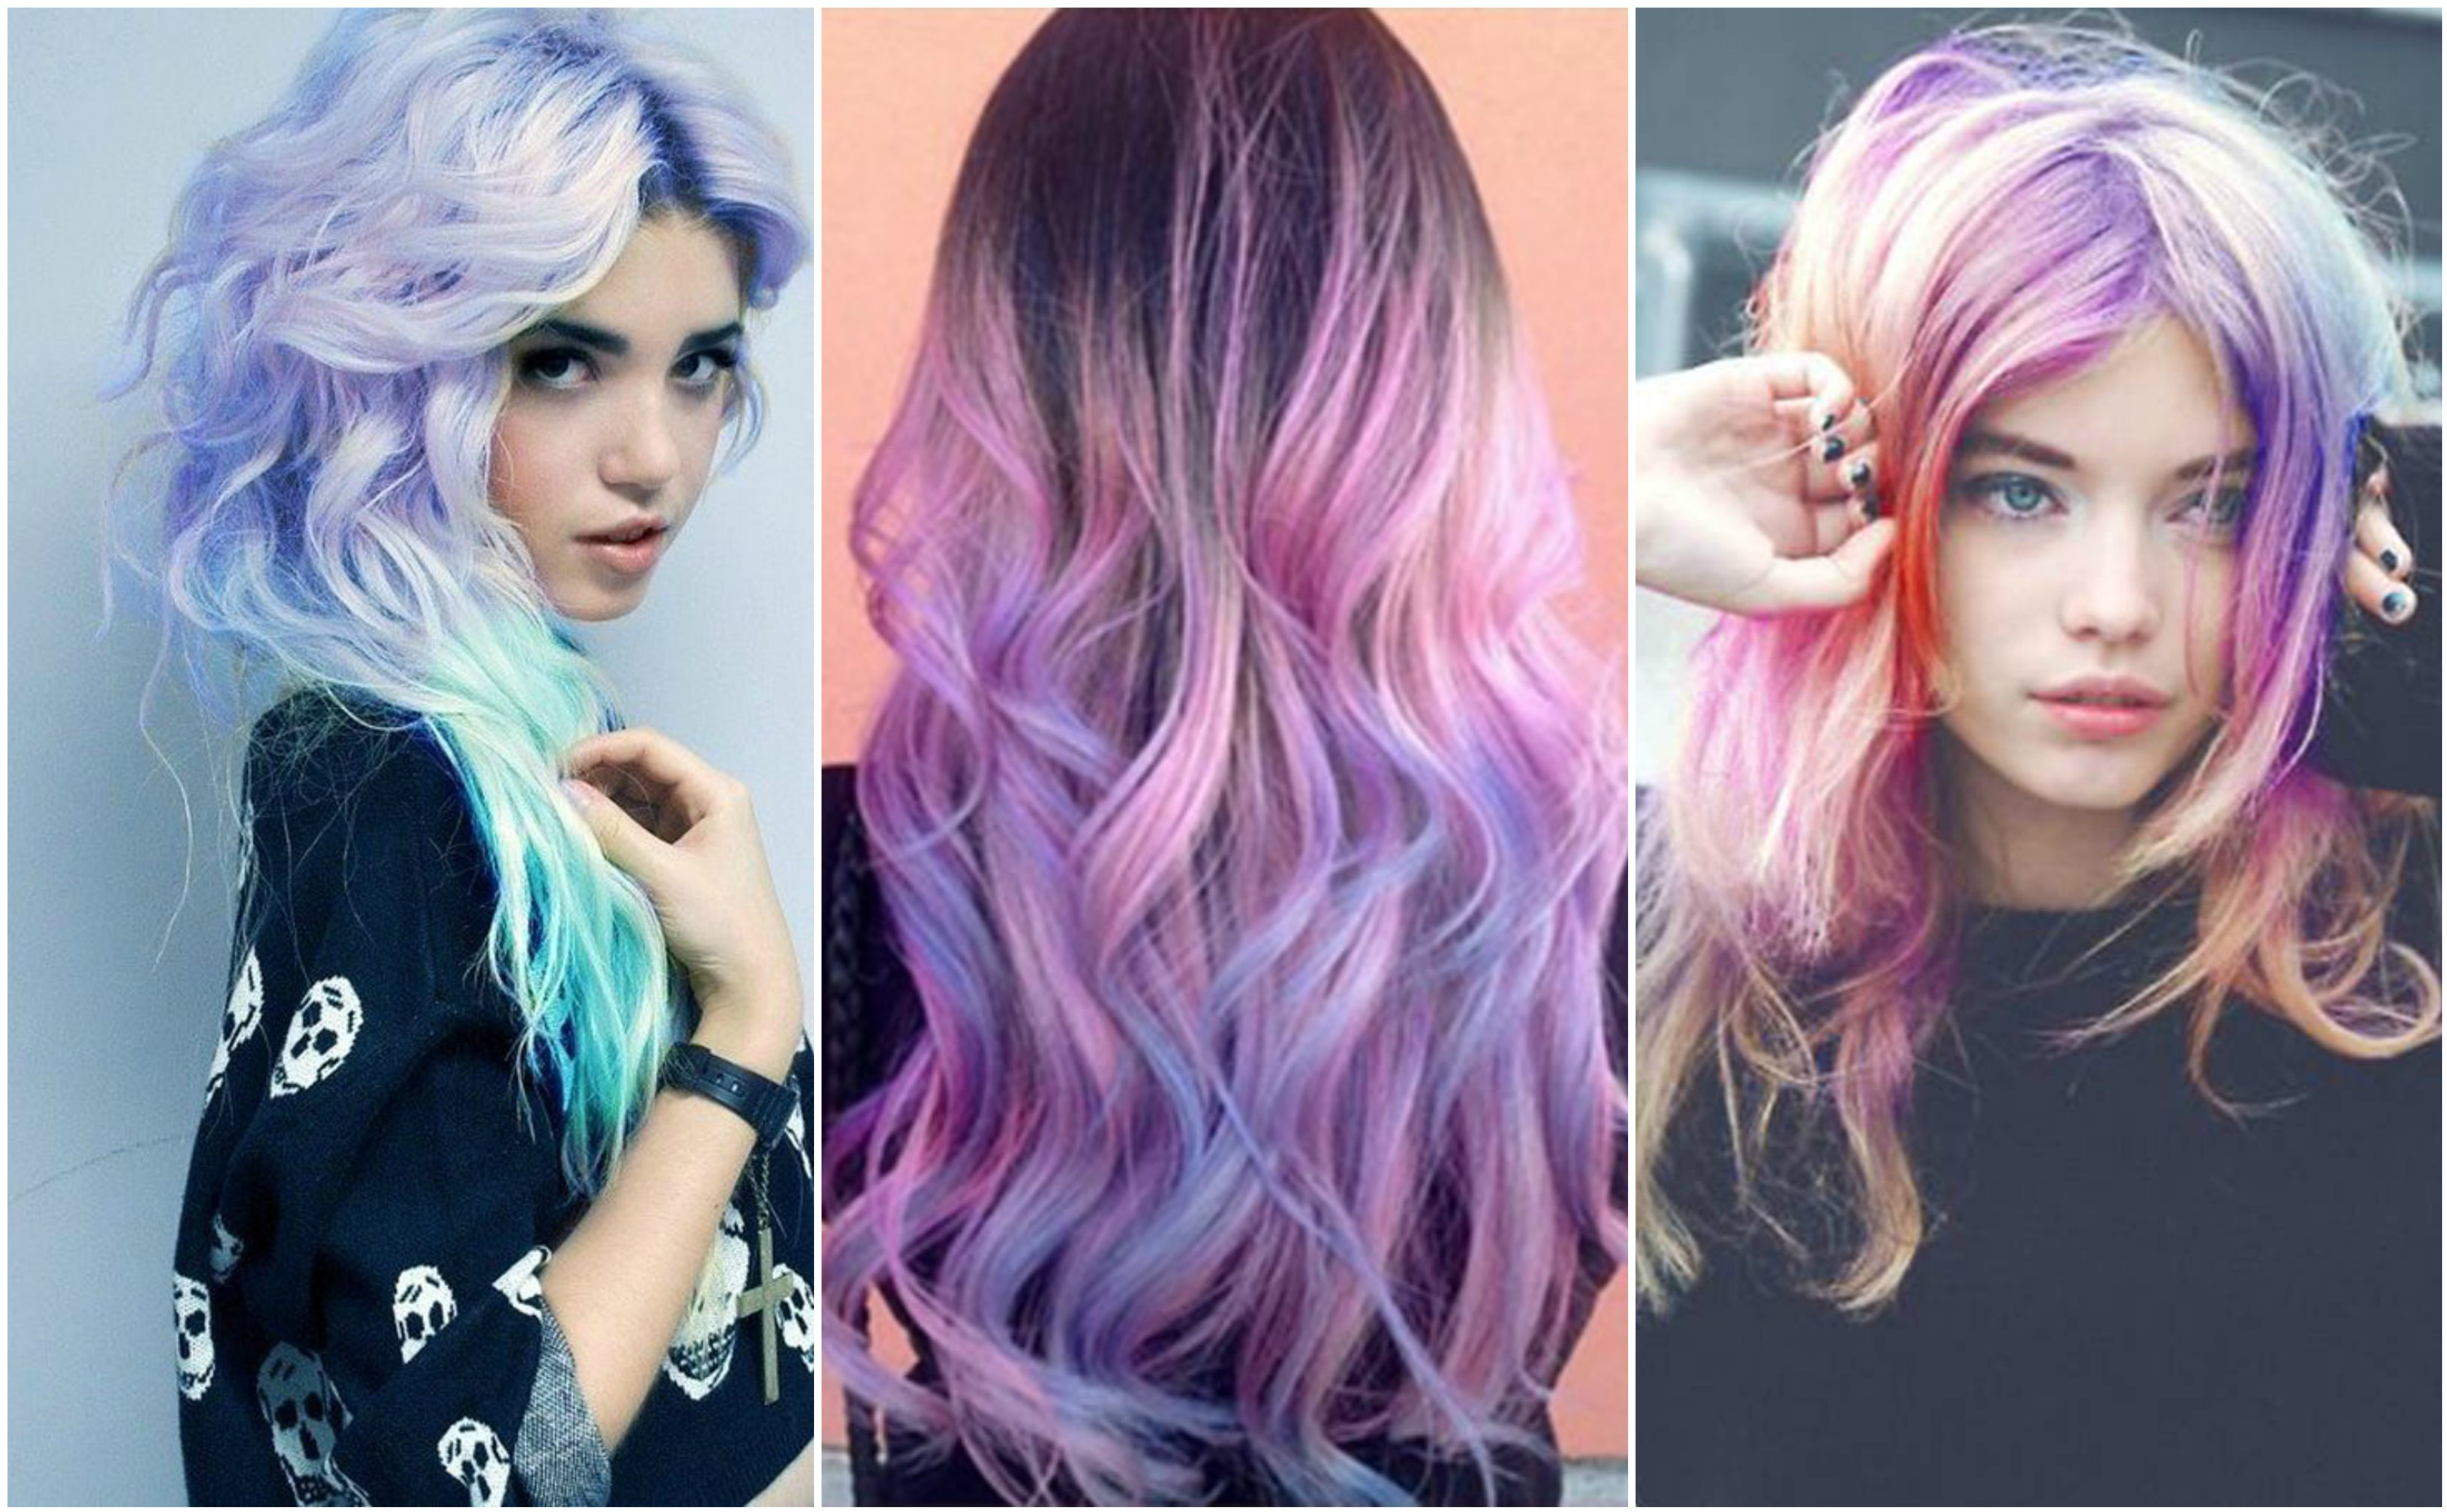 Get your glow on with the moonstone rainbow hair trend